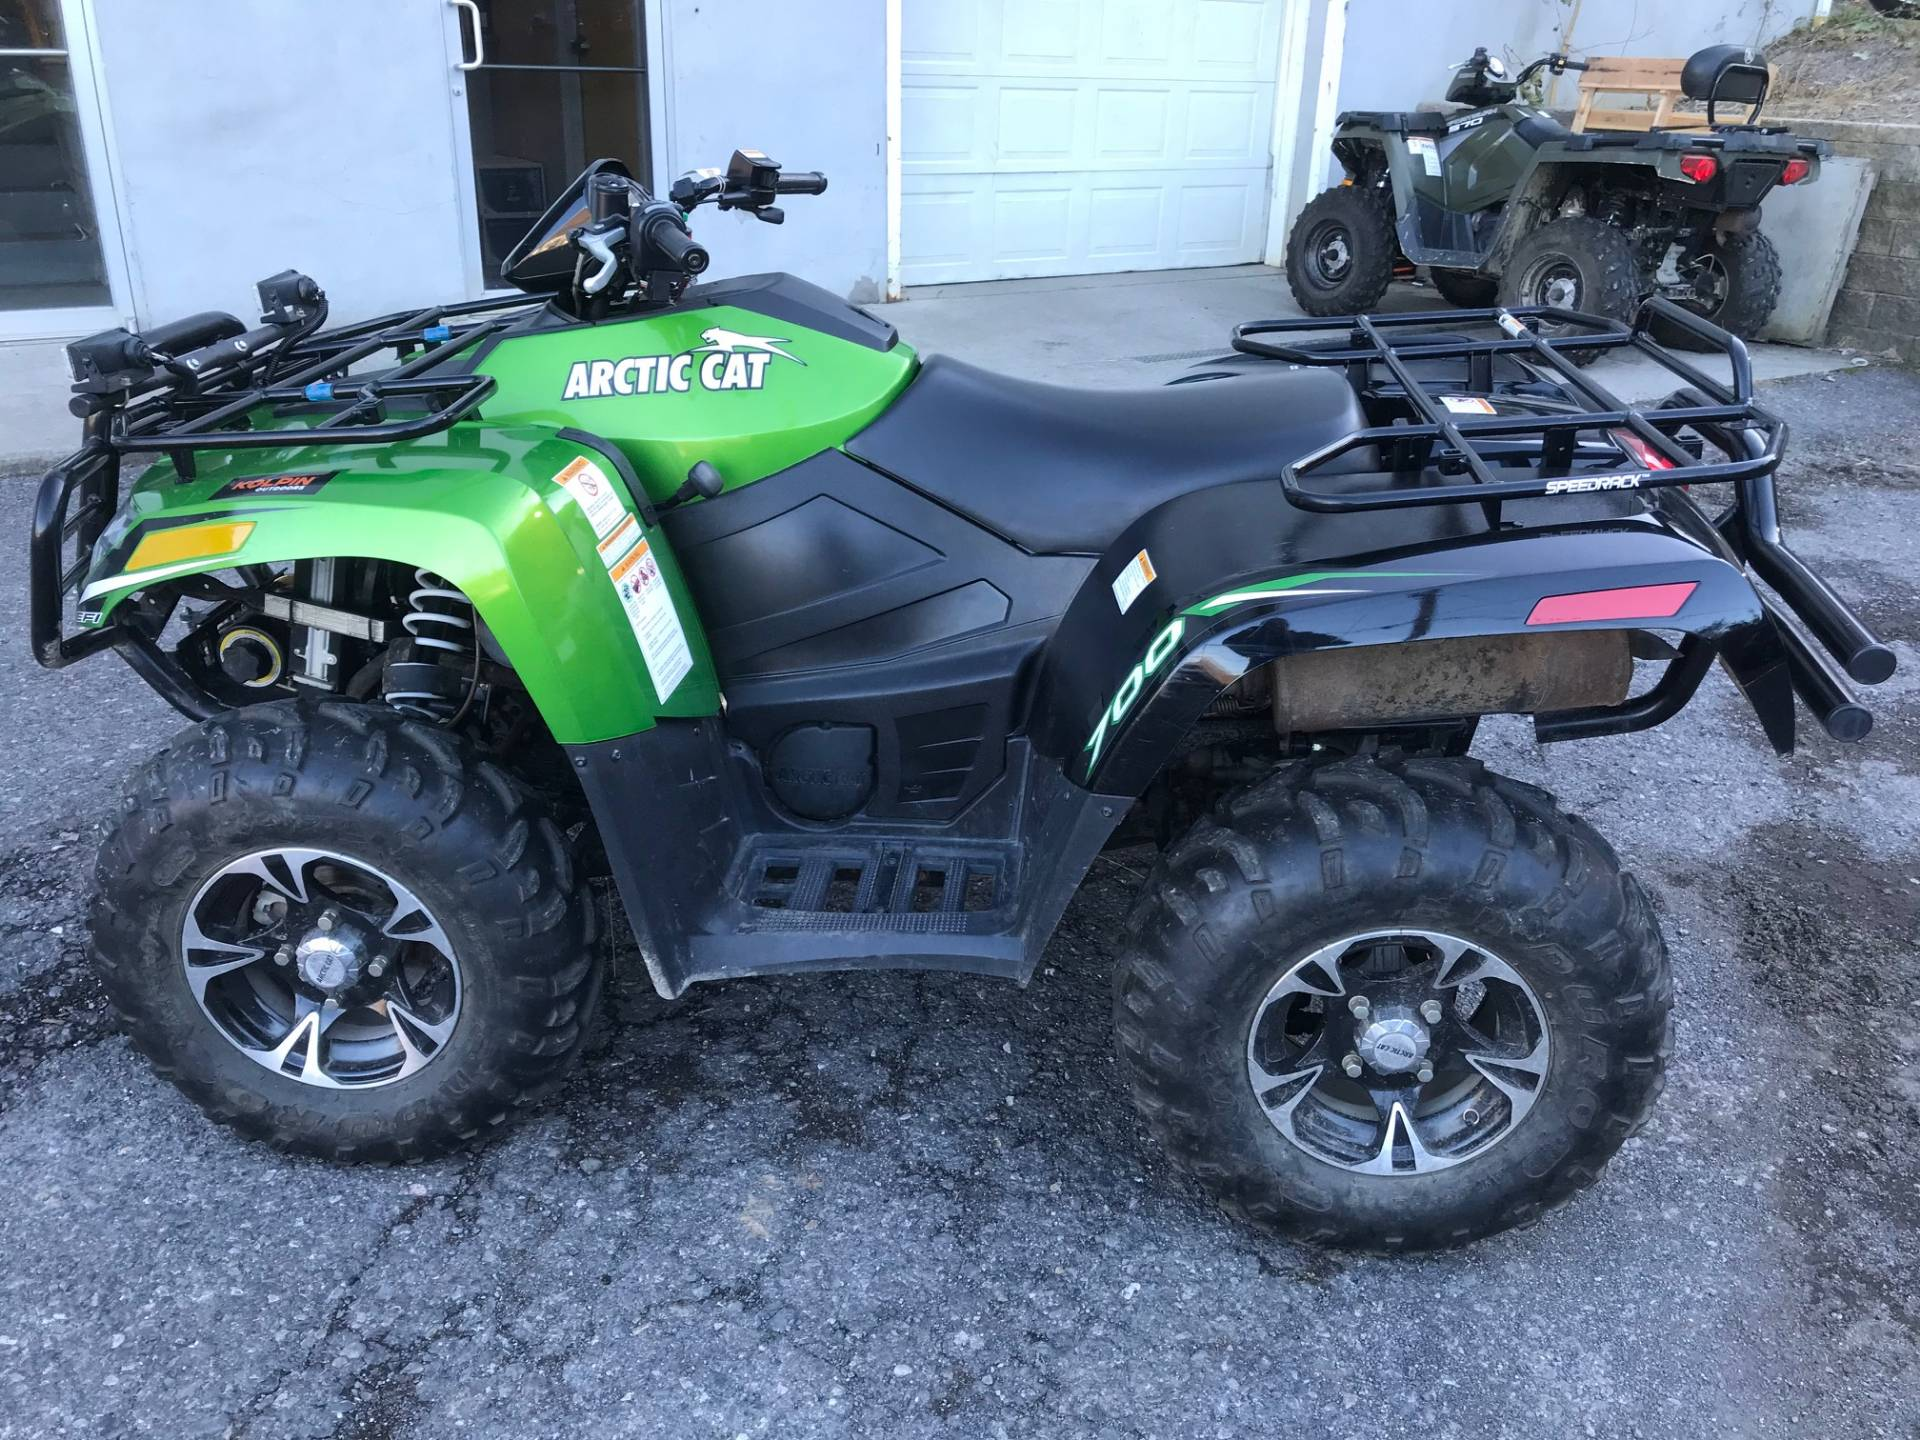 2013 Arctic Cat 700 Limited in Cumberland, Maryland - Photo 2